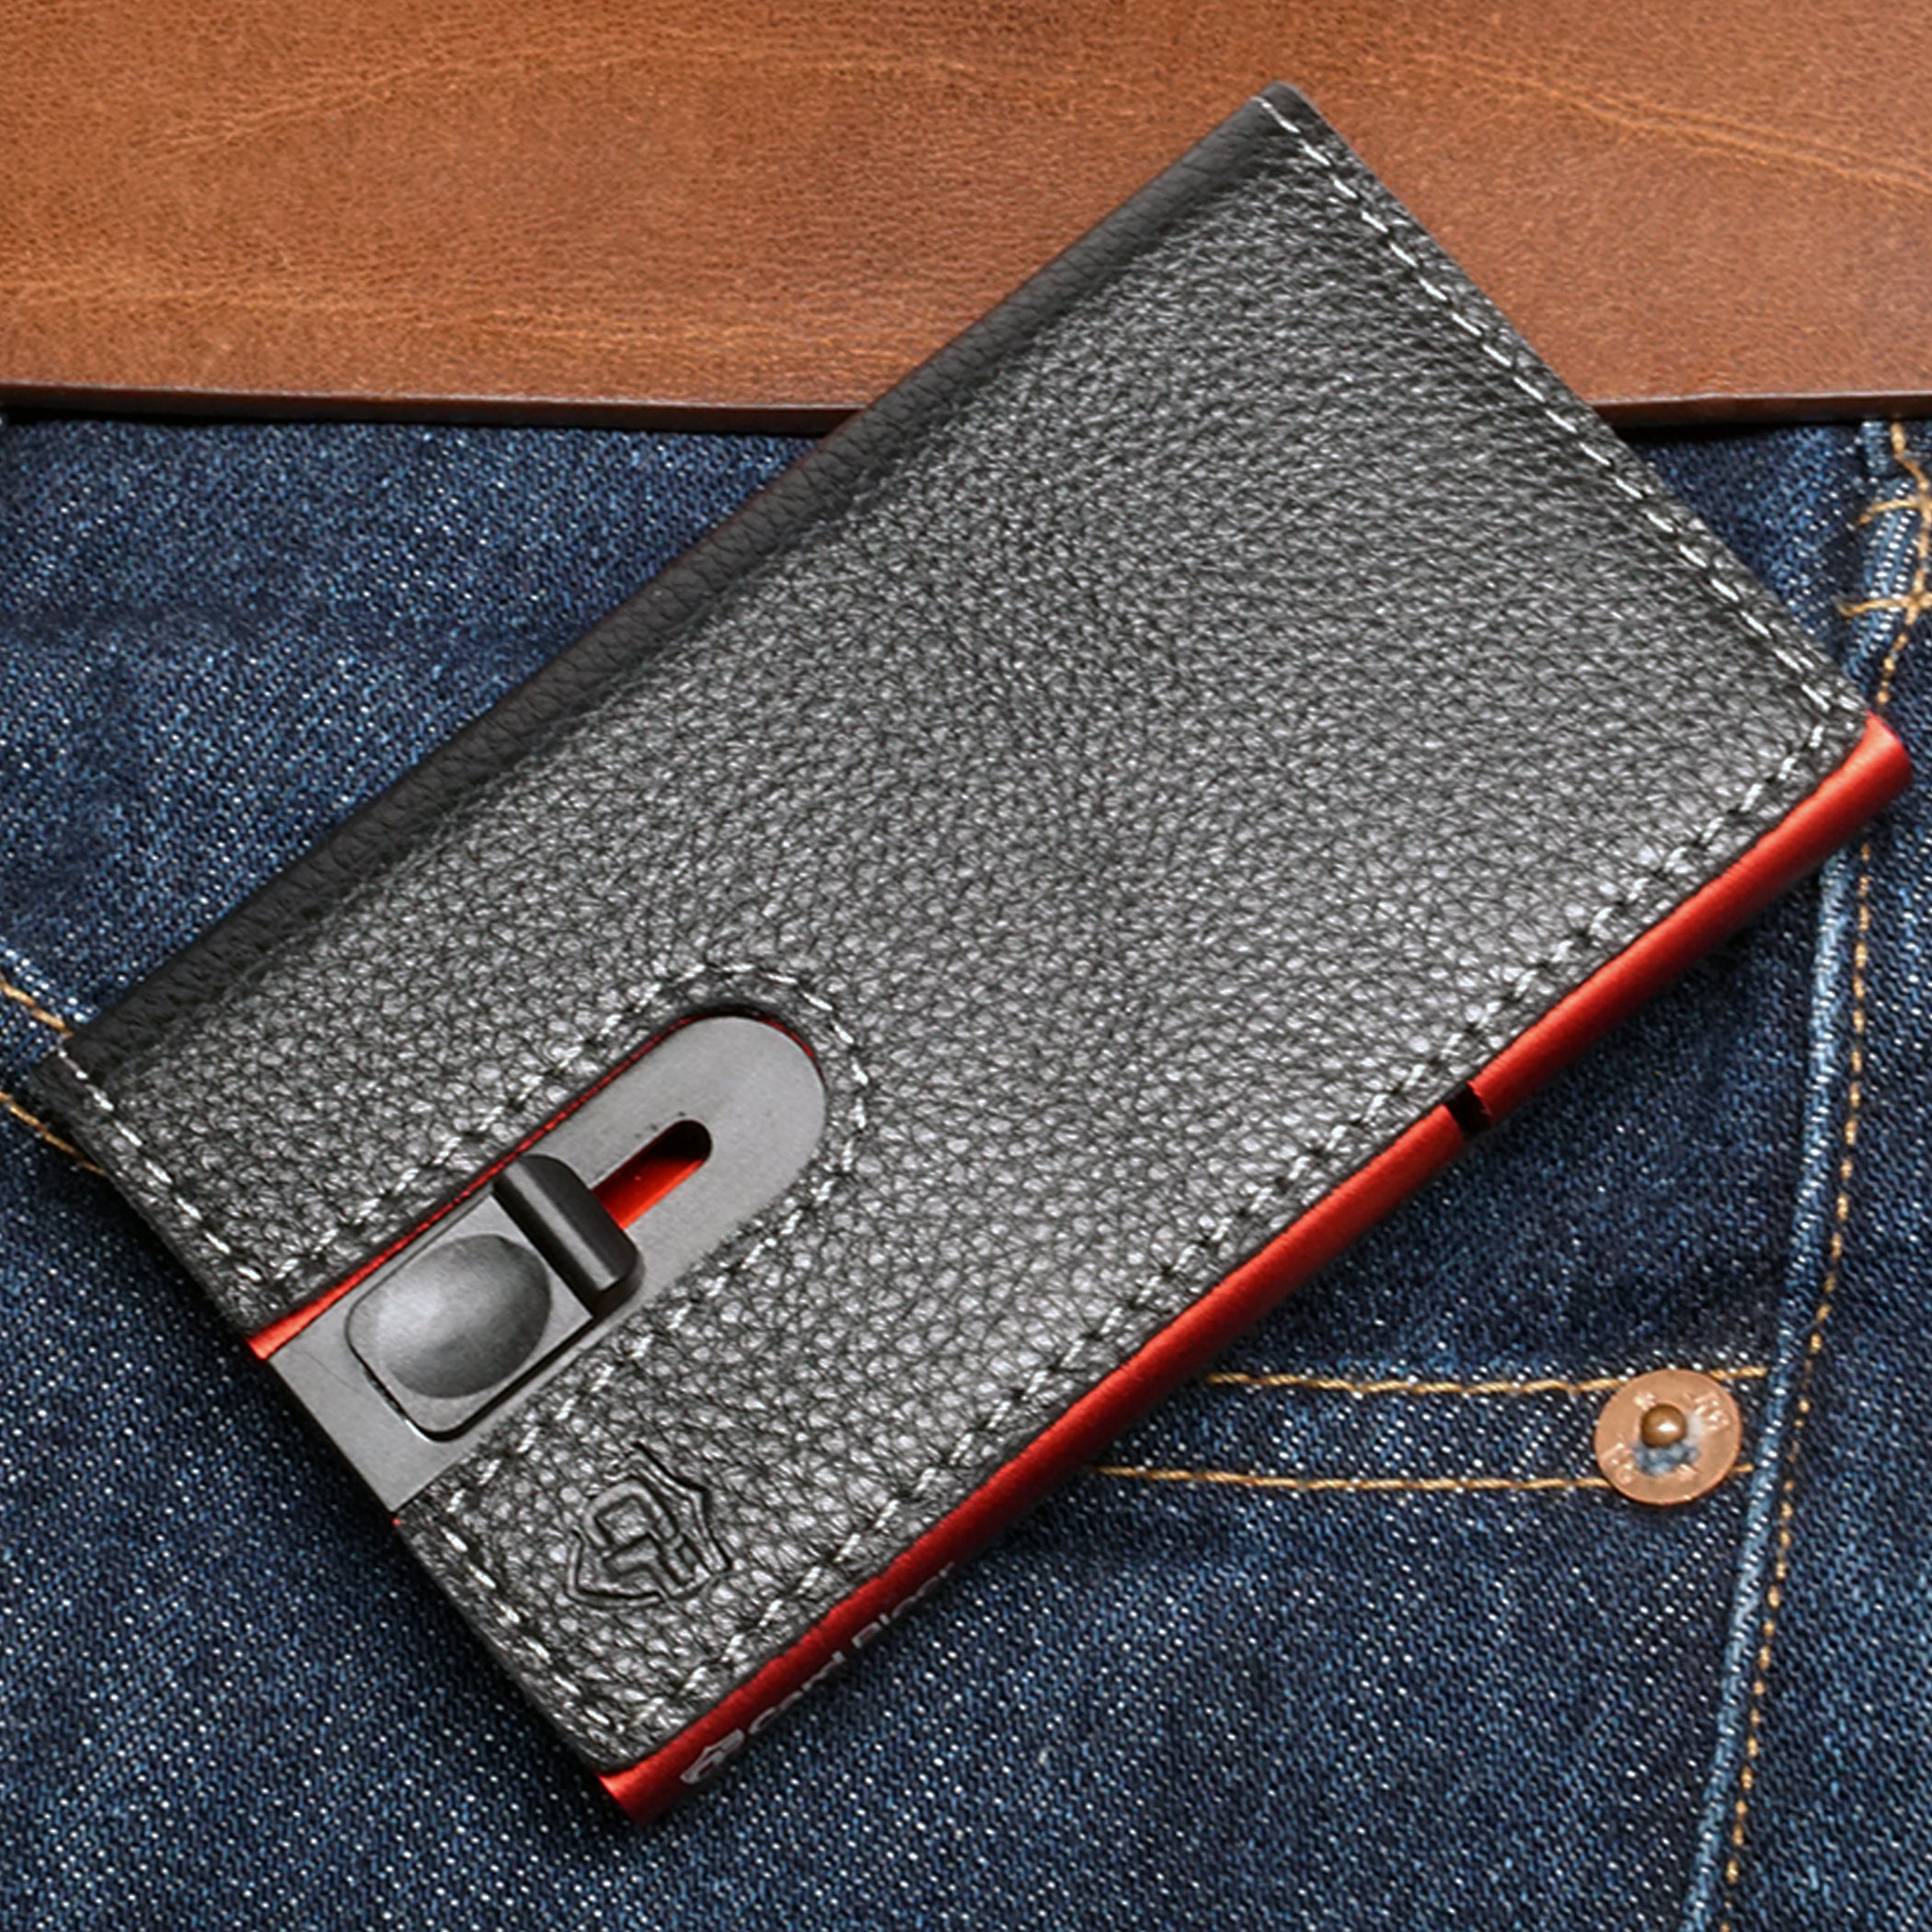 Card Blocr Credit Card Holder in Red Wrapped in Black Leather | RFID Wallet Front Pocket